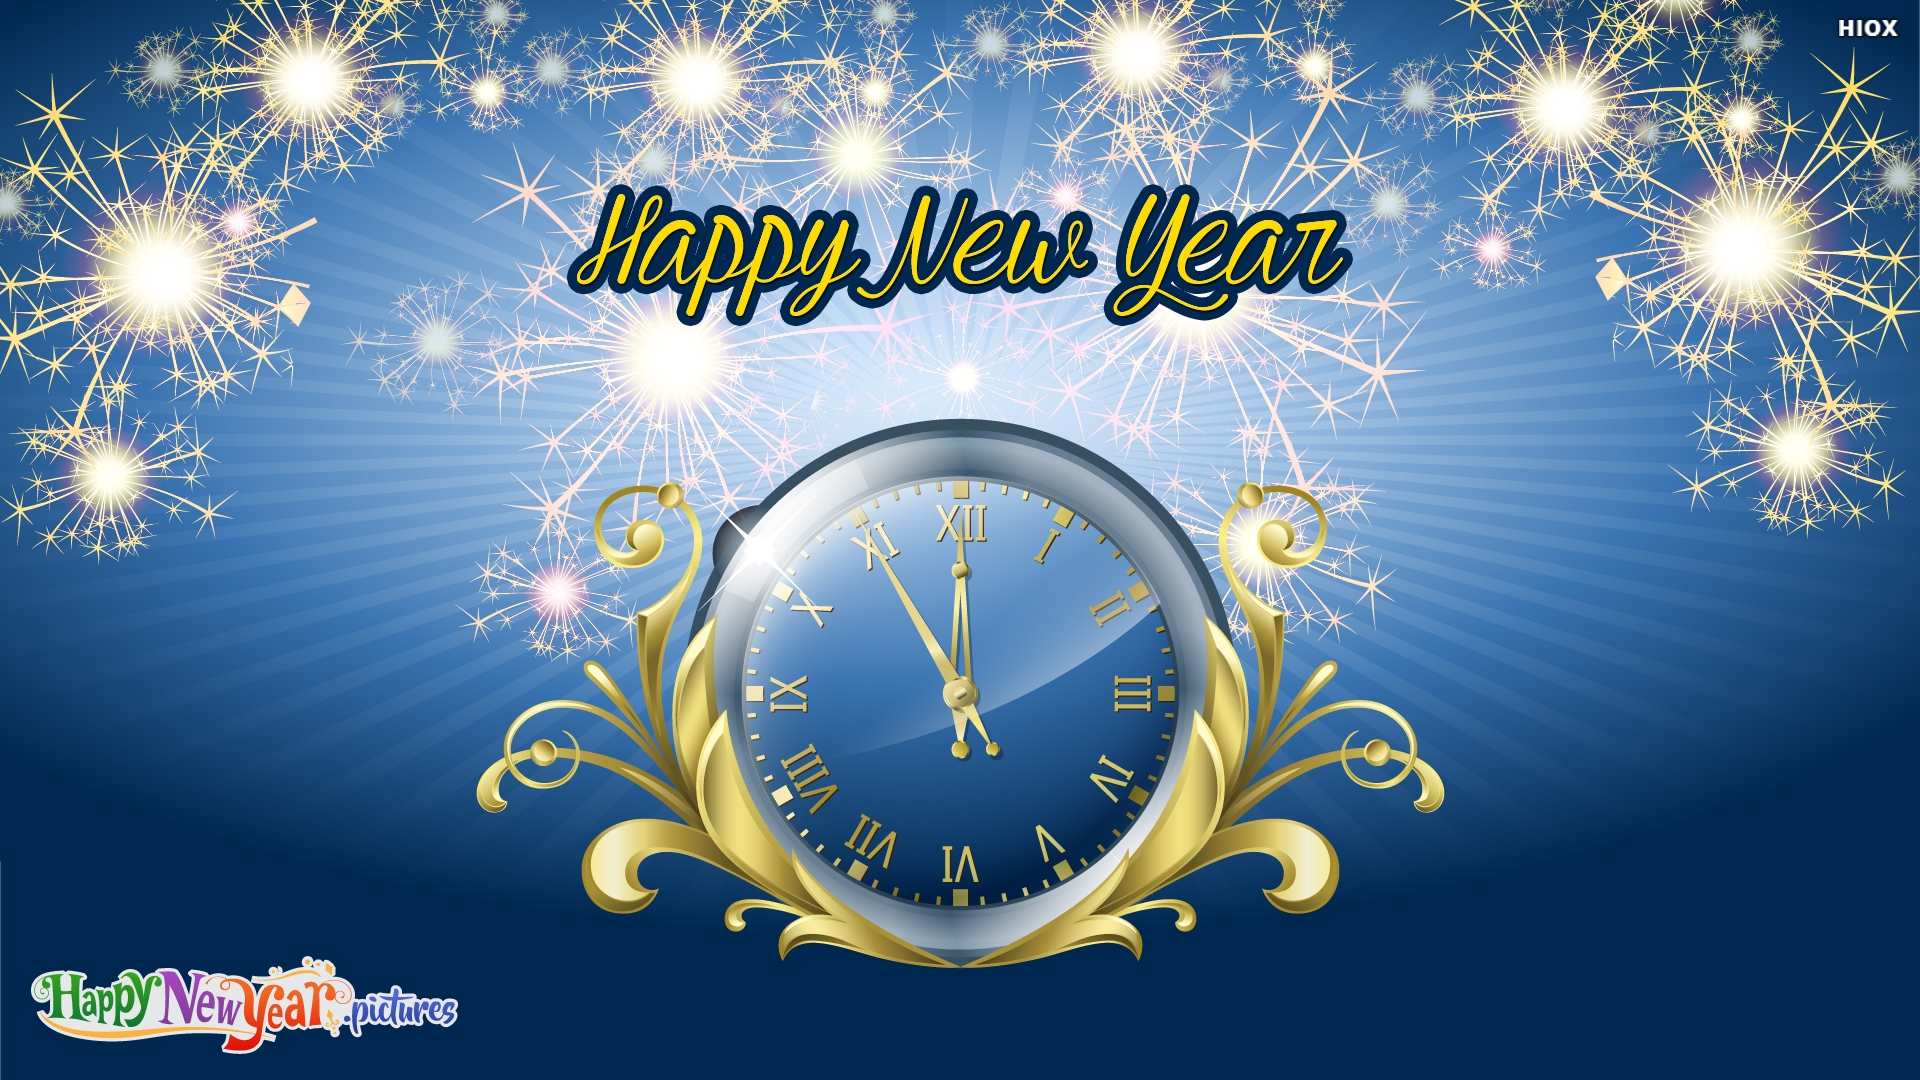 Happy New Year Day Greetings To All